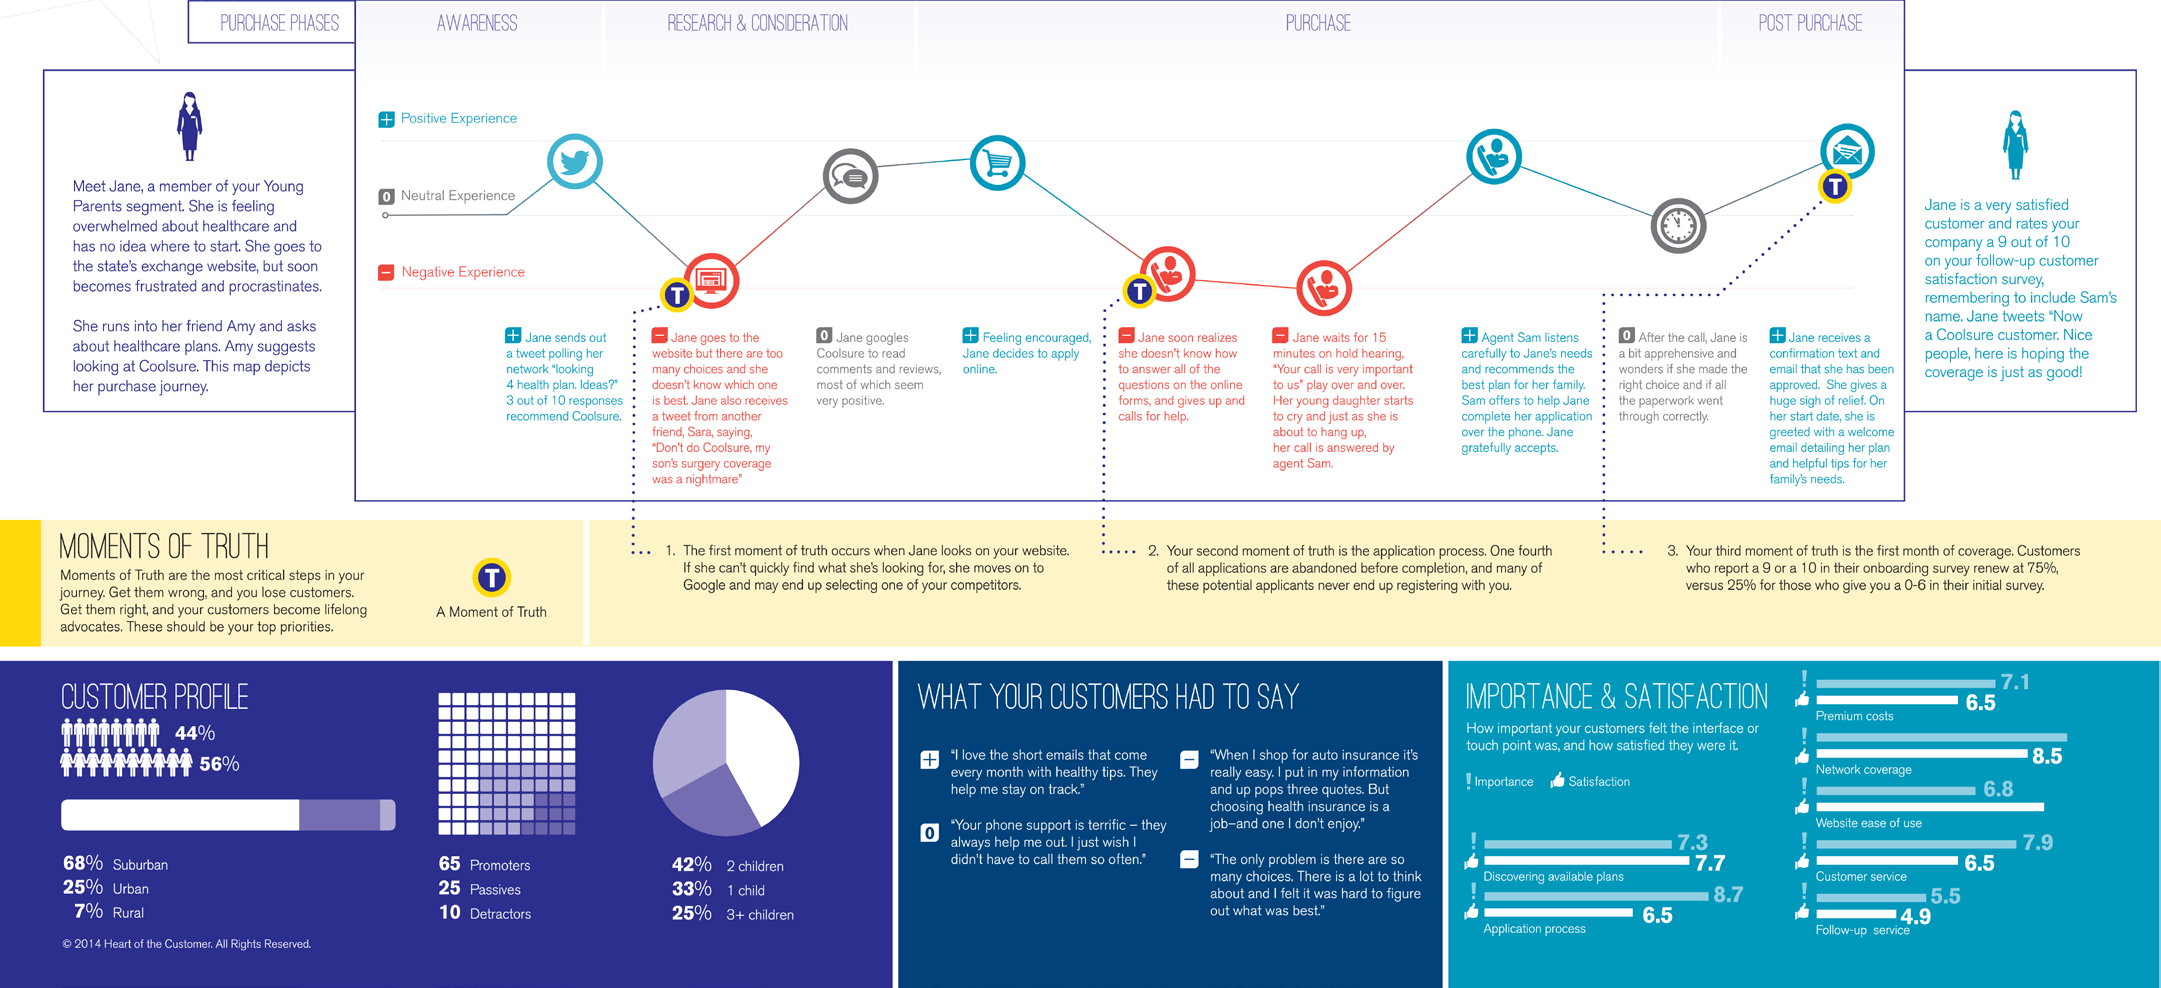 Sample customer journey map from Heart of the Customer - example2